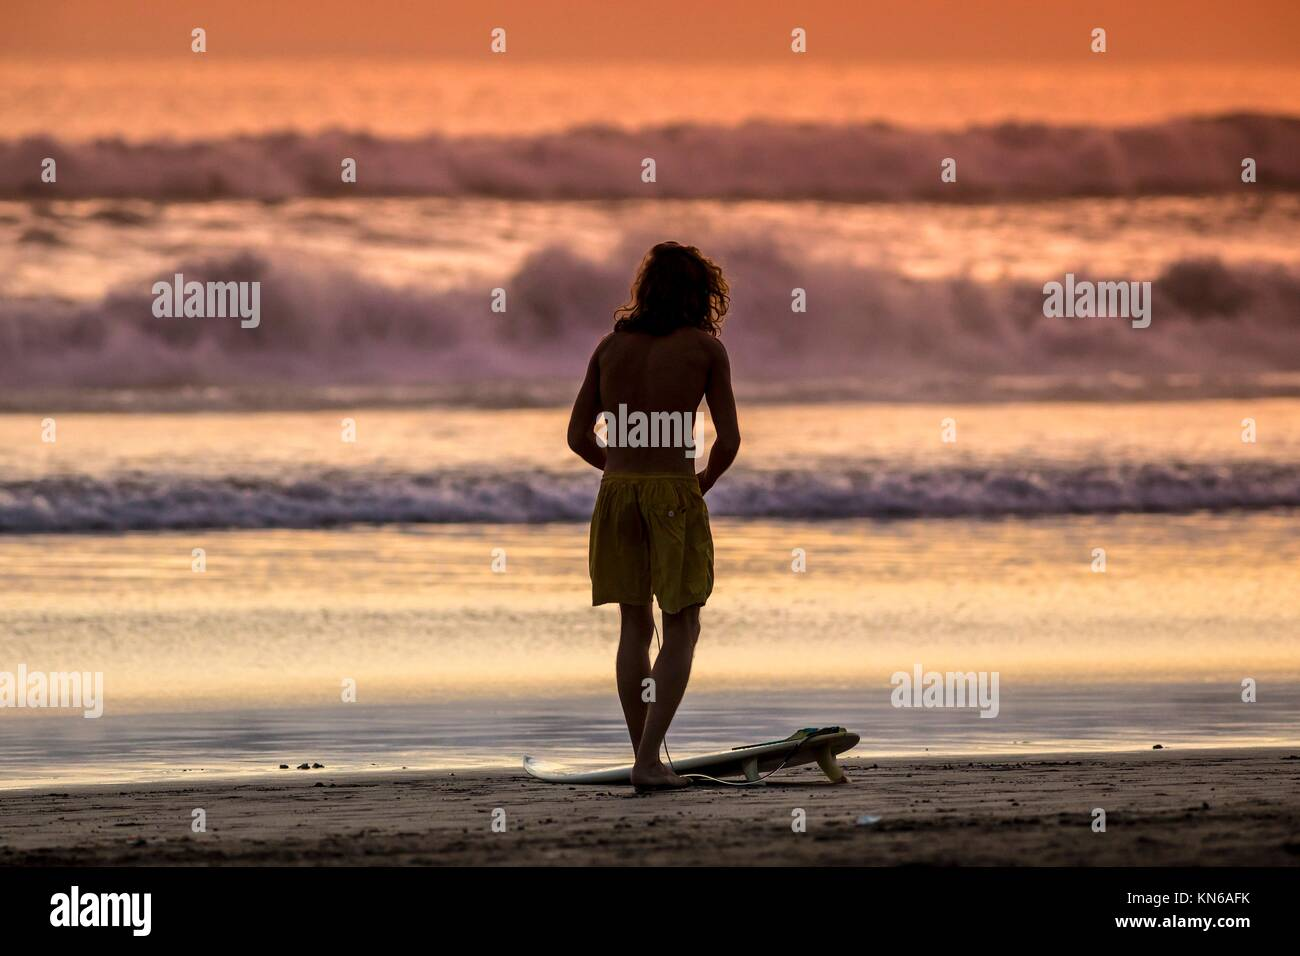 Surfer on the Beach at Sunset Tme, Bali, Indonesia. Stock Photo